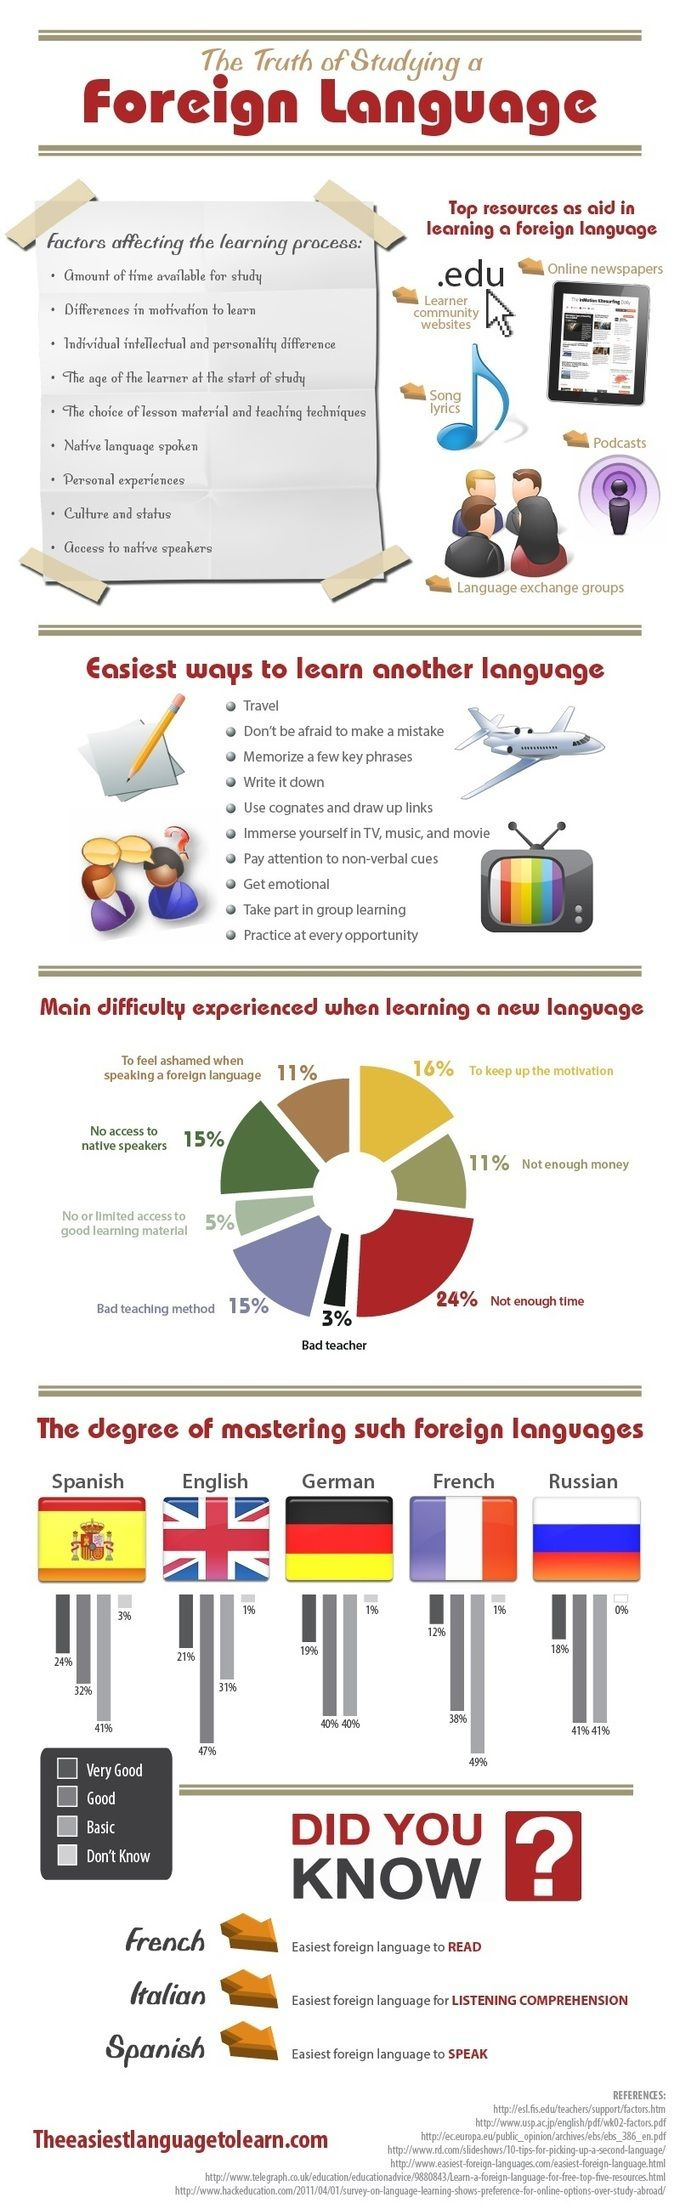 17 best images about learning languages can open new doors on infographic the truth of studying a foreign language